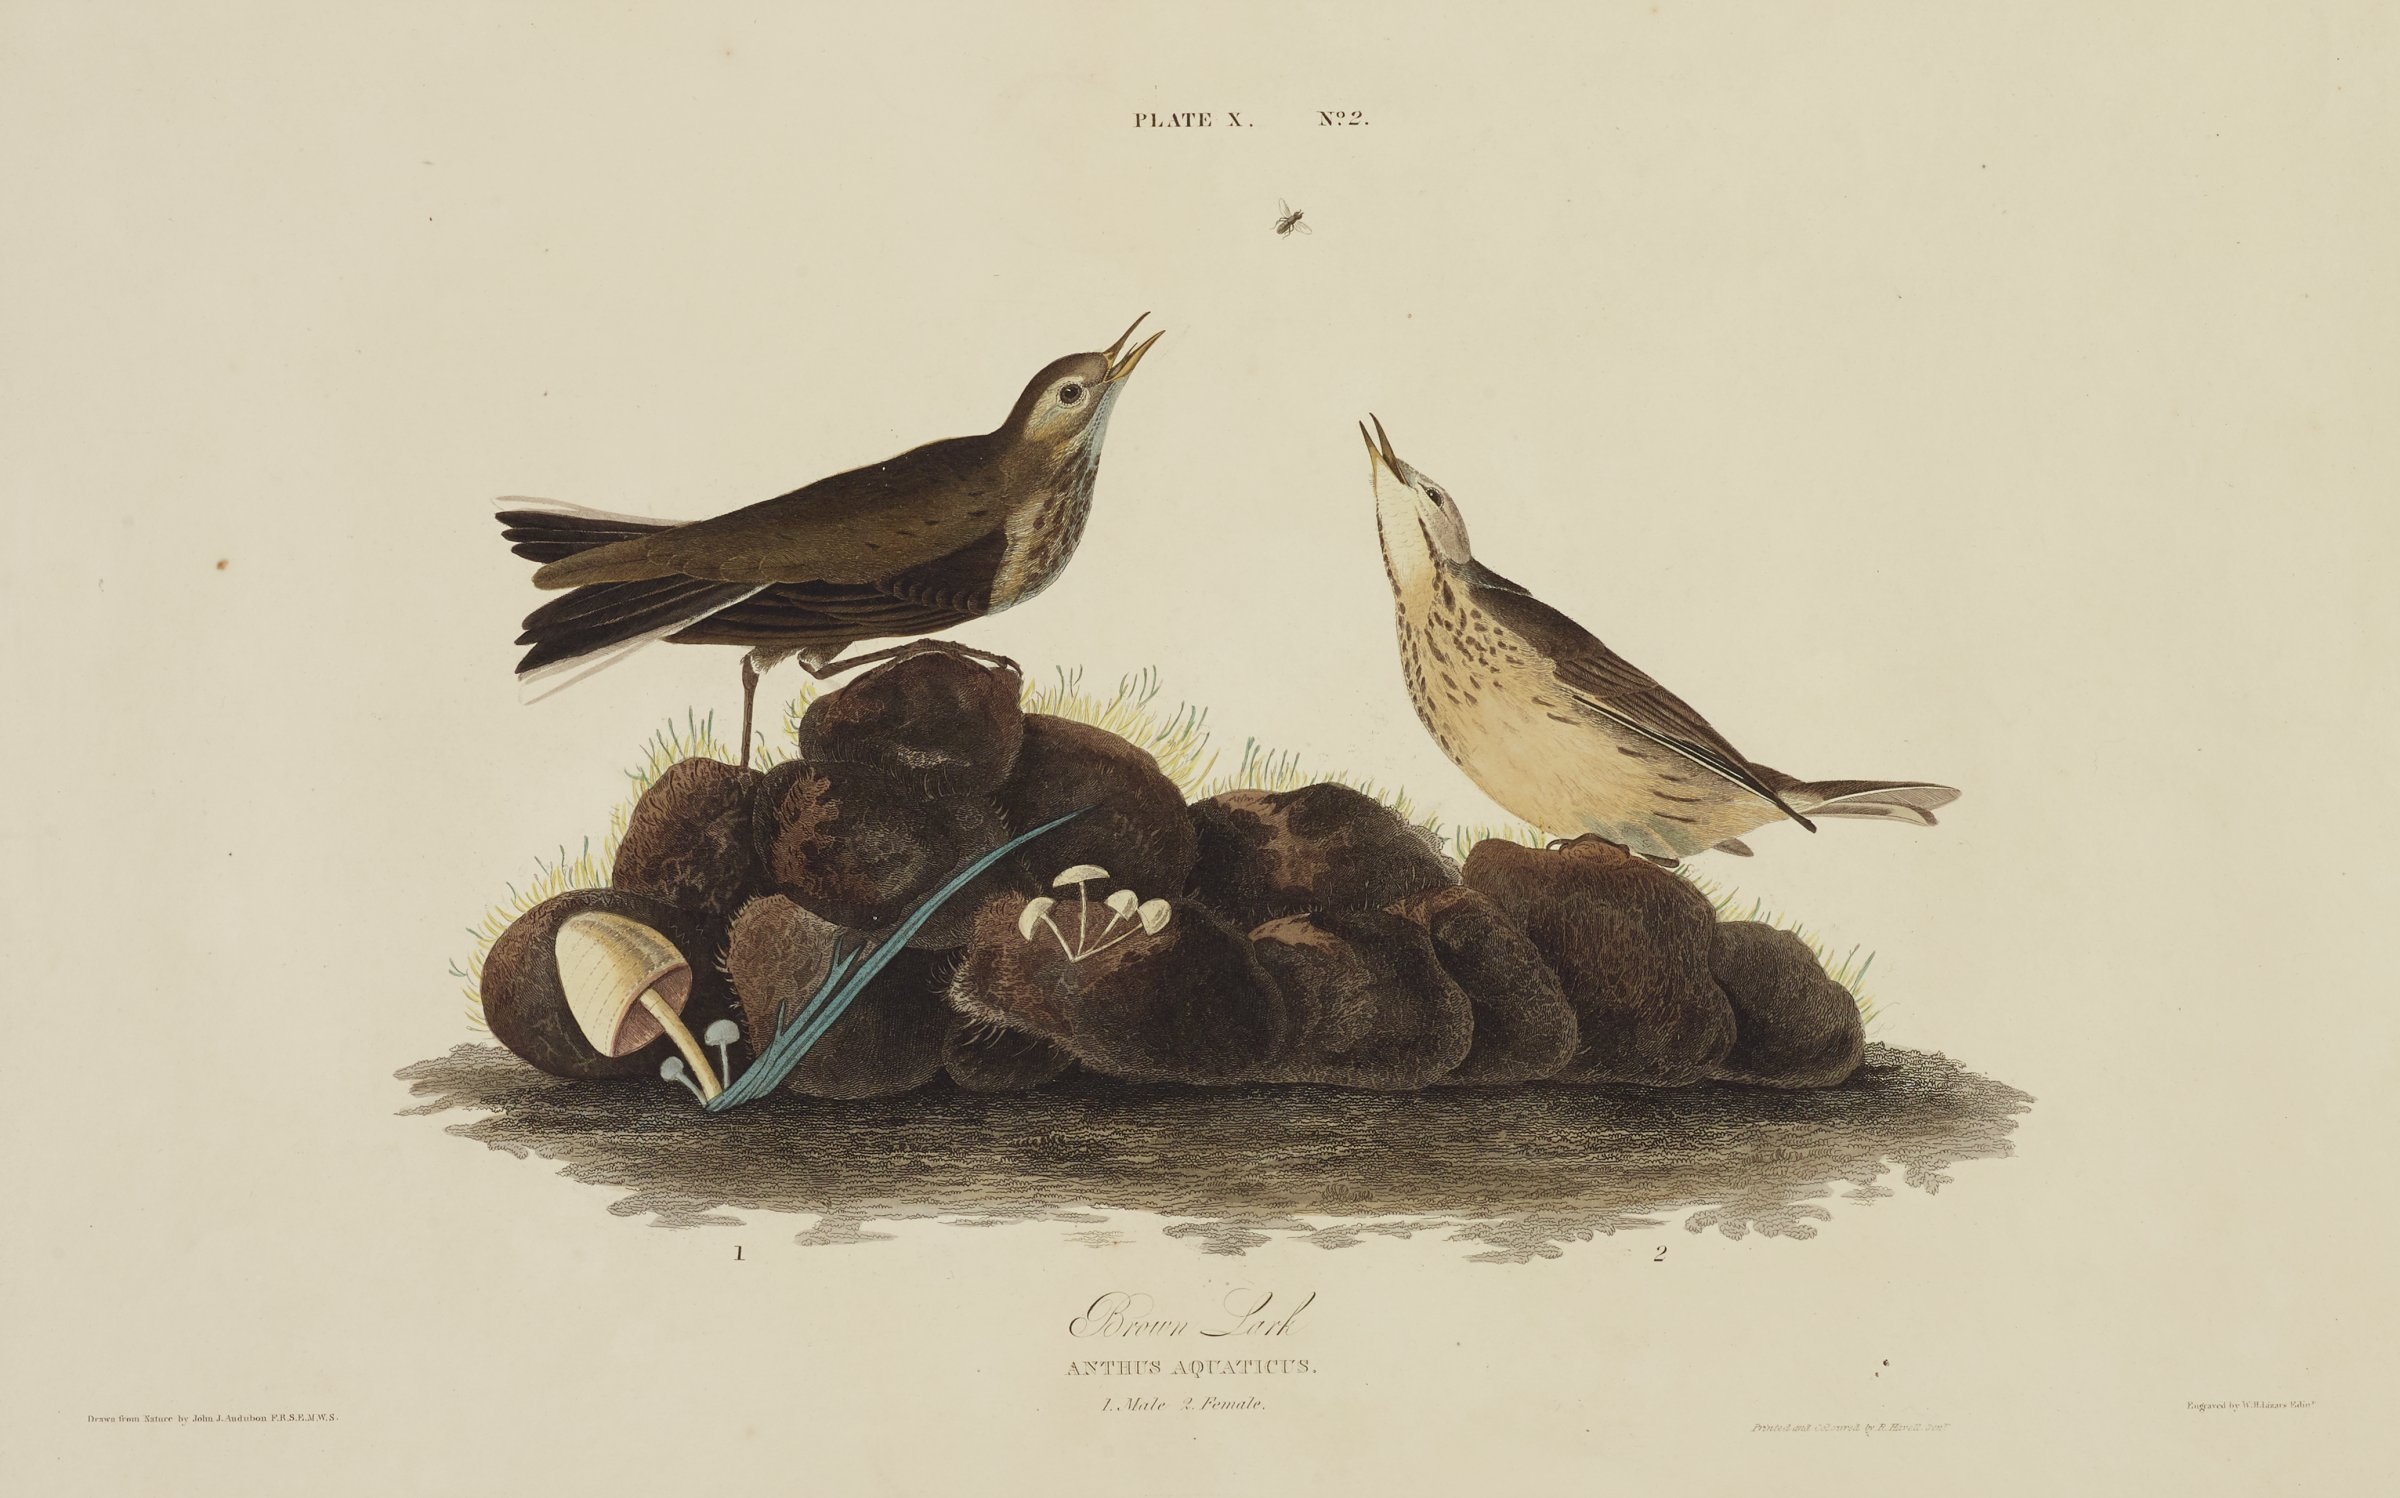 Two birds stand on a pile of dark rocks that sprout mushrooms. The birds look upwards with open beaks to an insect flying above them. Both birds are covered primarily in black and cream feathers and characterized by their black speckled chests.